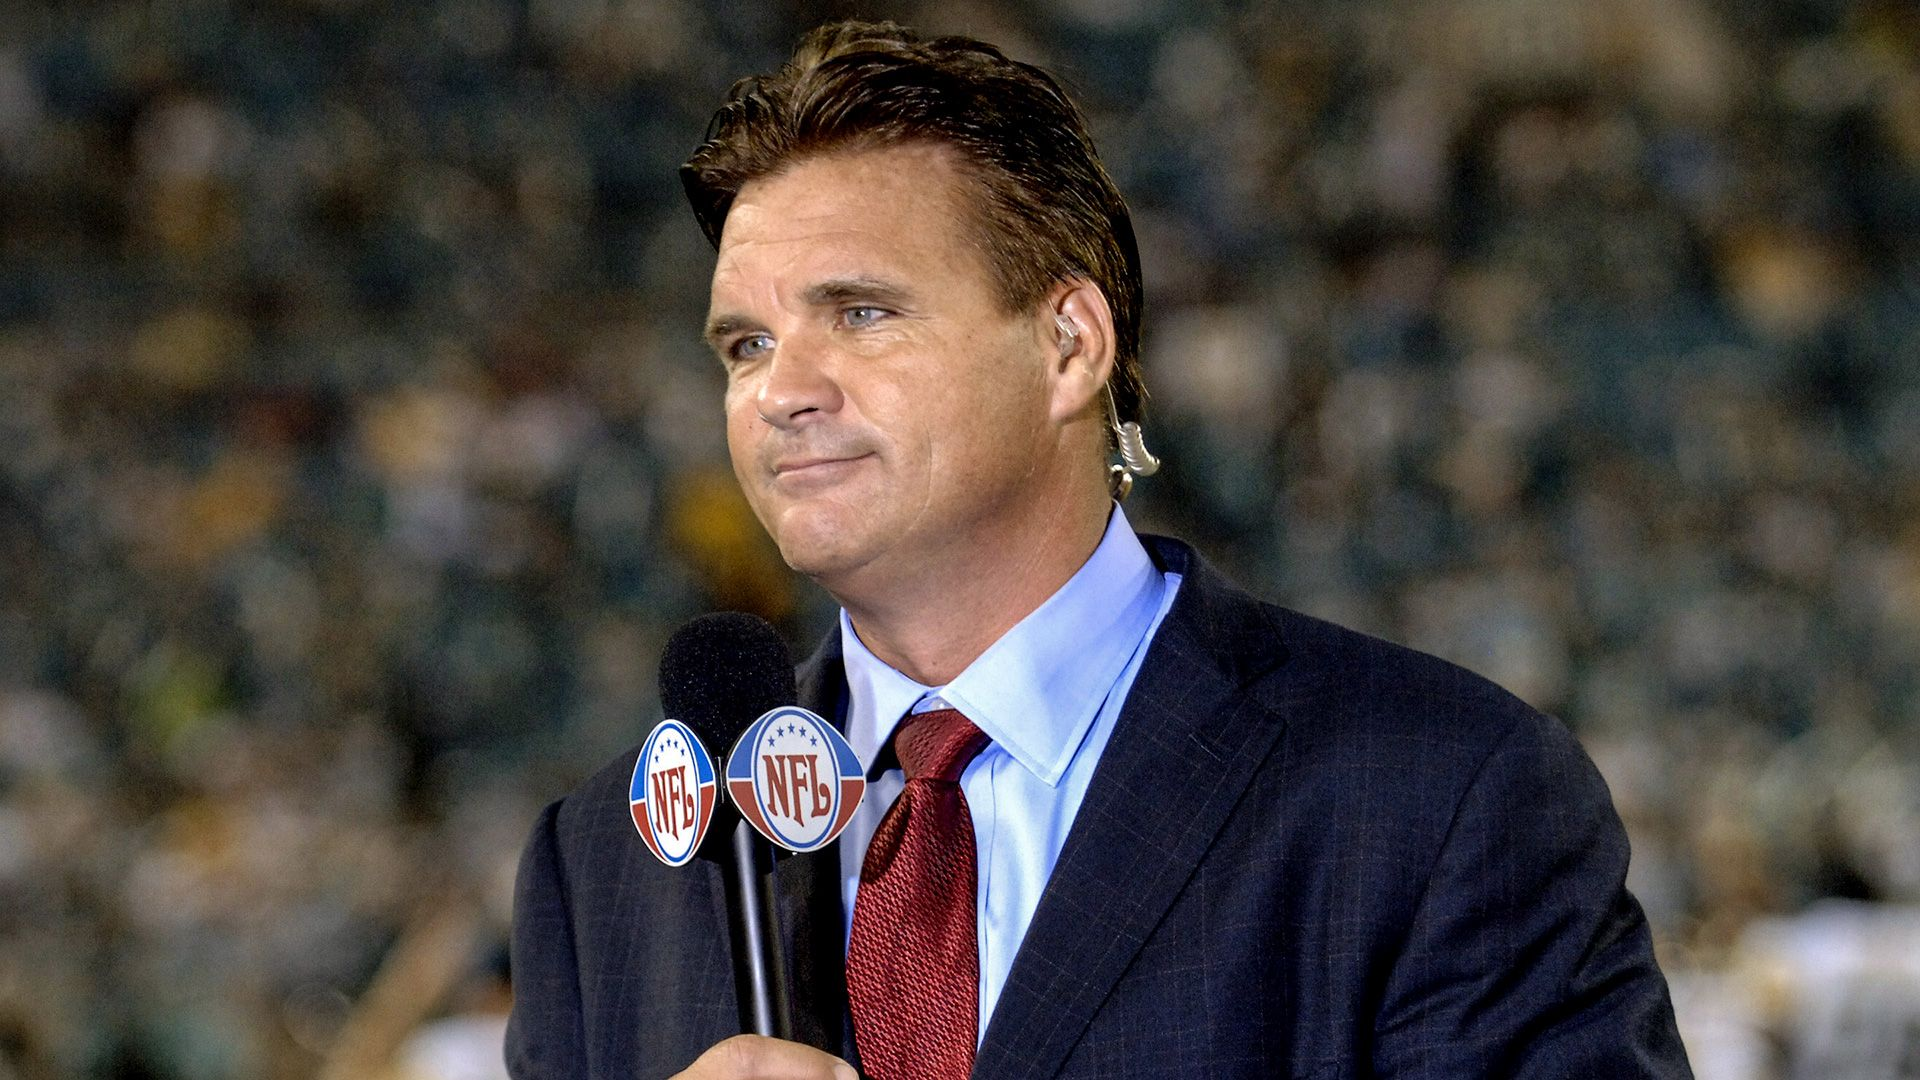 NFL Network's Brian Baldinger suspended for suggesting Eagles put bounty on Ezekiel Elliott